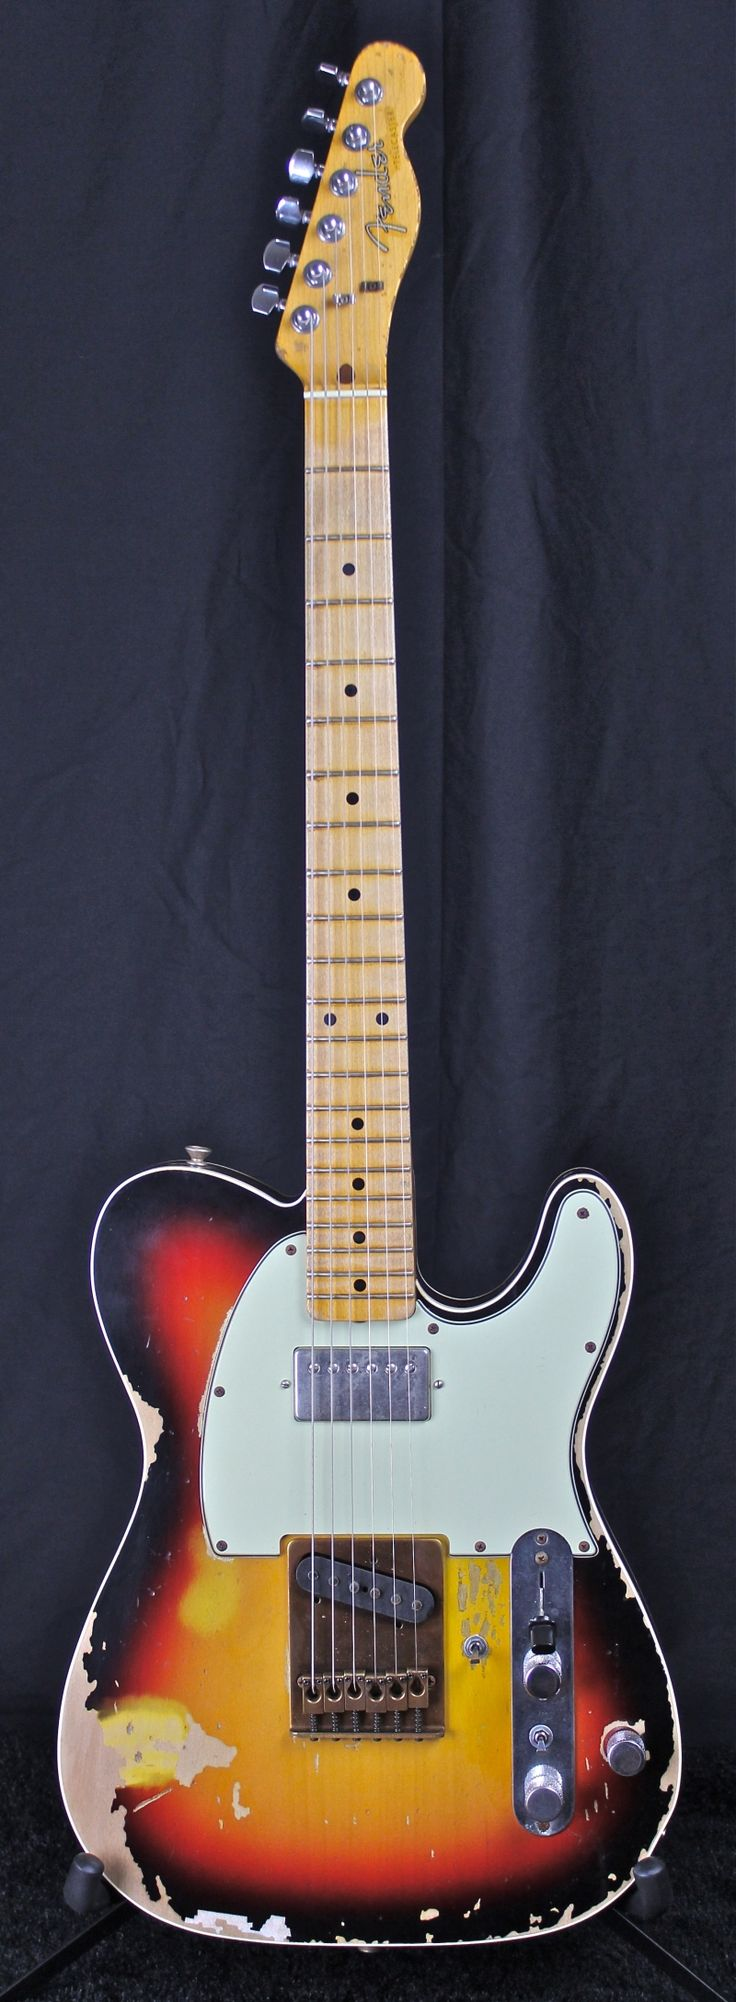 49f9e39cc5bf2435f791ea0dd16f700a vintage telecaster fender telecaster best 25 vintage telecaster ideas on pinterest fender guitars andy summers telecaster wiring diagram at soozxer.org